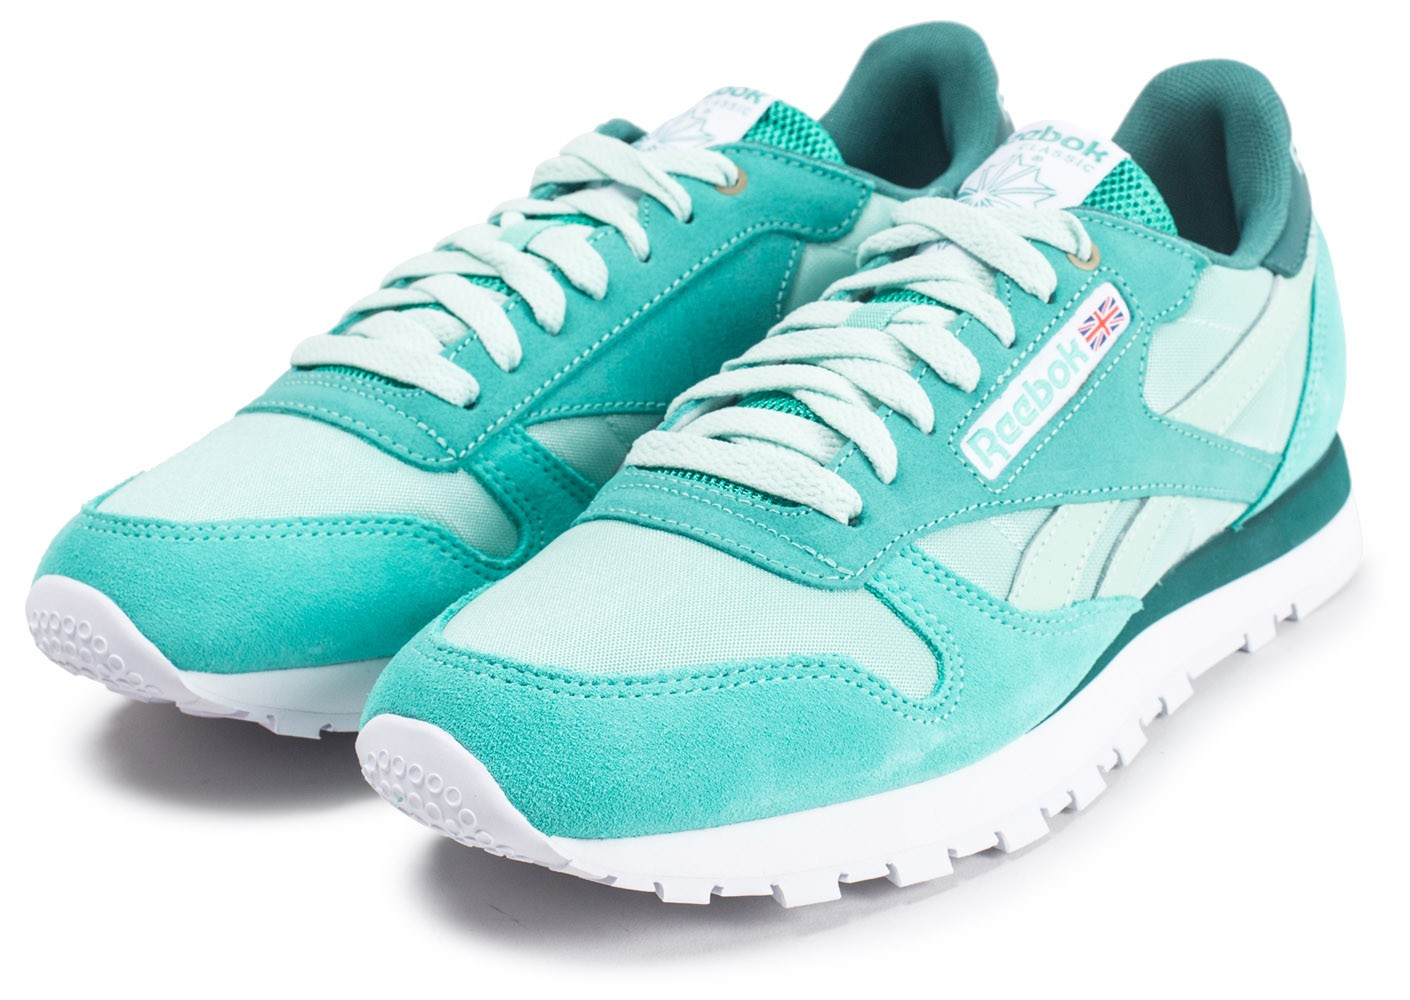 Chaussures Verte Classic Color Leather Reebok Cans Montana System ZP8zWqHw